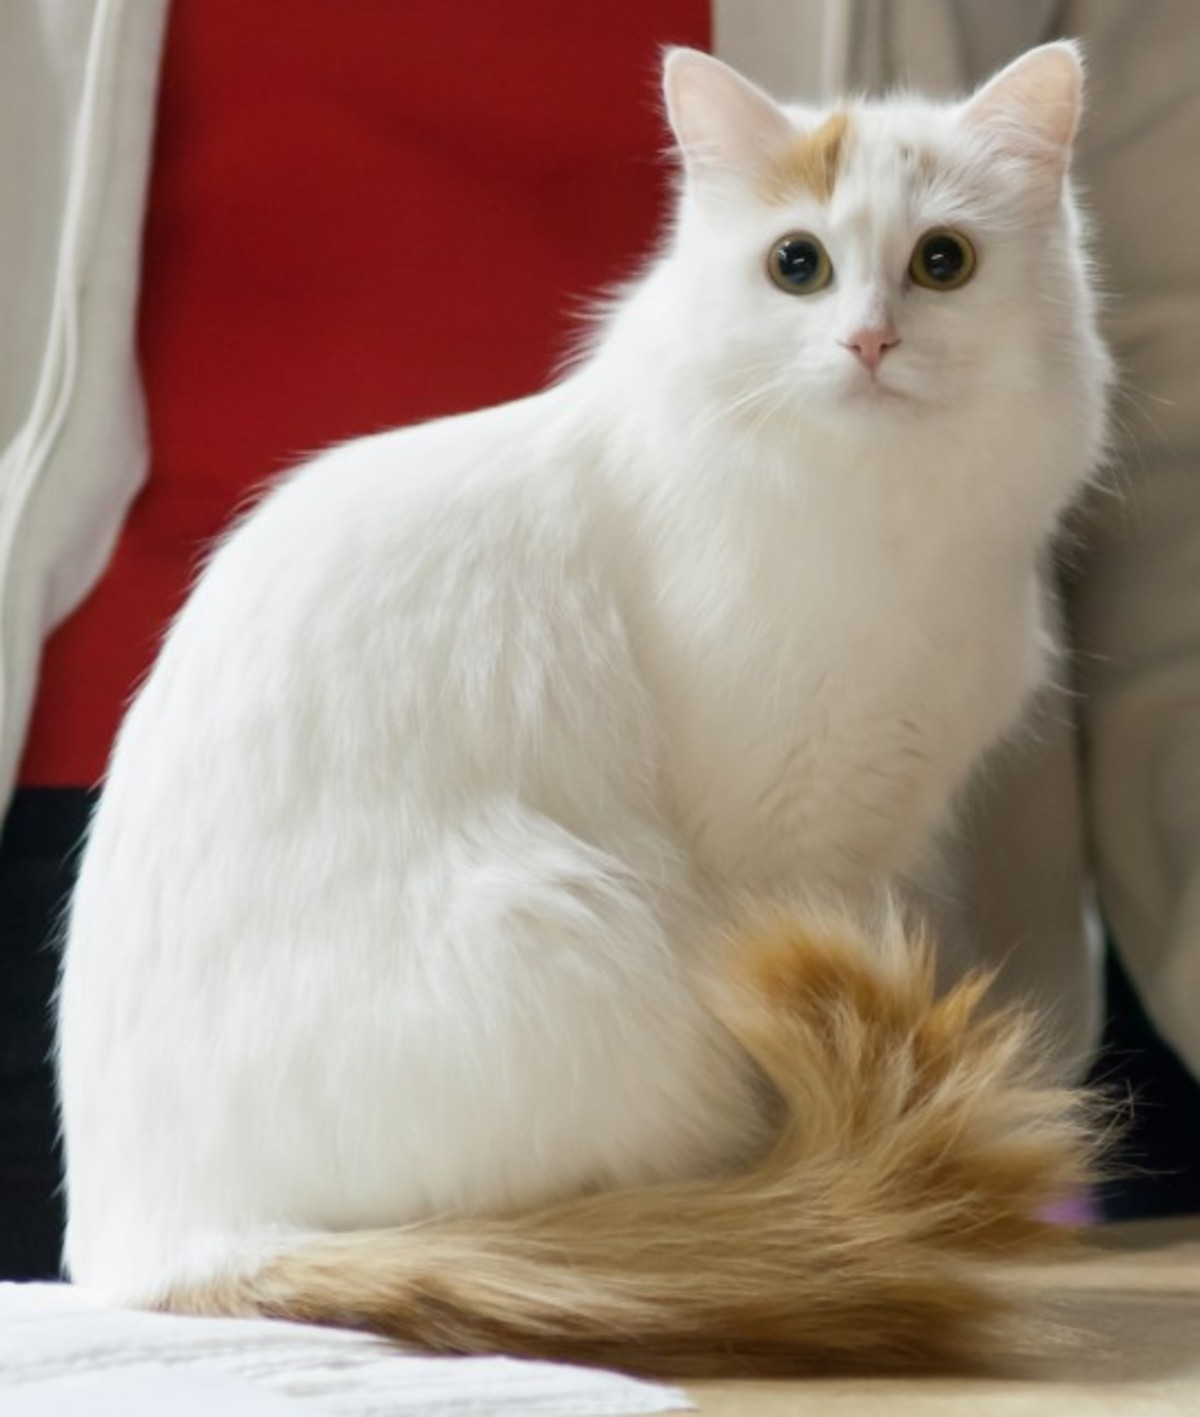 kitty spotlight: turkish van. A rare breed, distinguished by its pattern, 'Van', which is where the tail and head are the only parts that have color. Even thoug